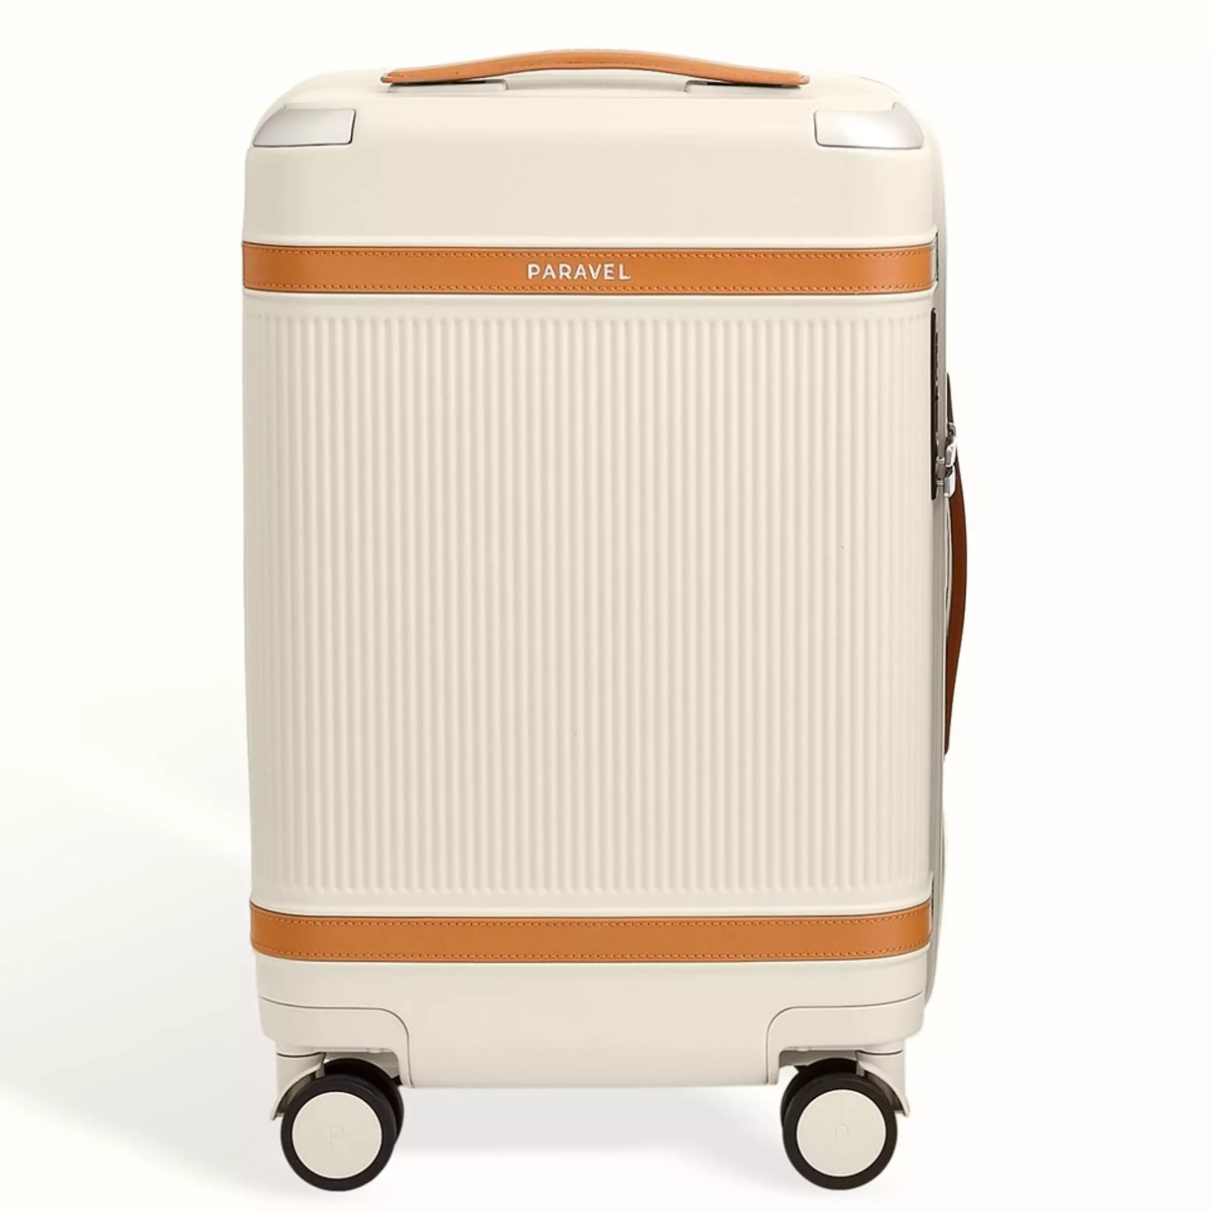 Paravel: Extra 15% Off for Selected Luggage, Bags and Interior Organizers